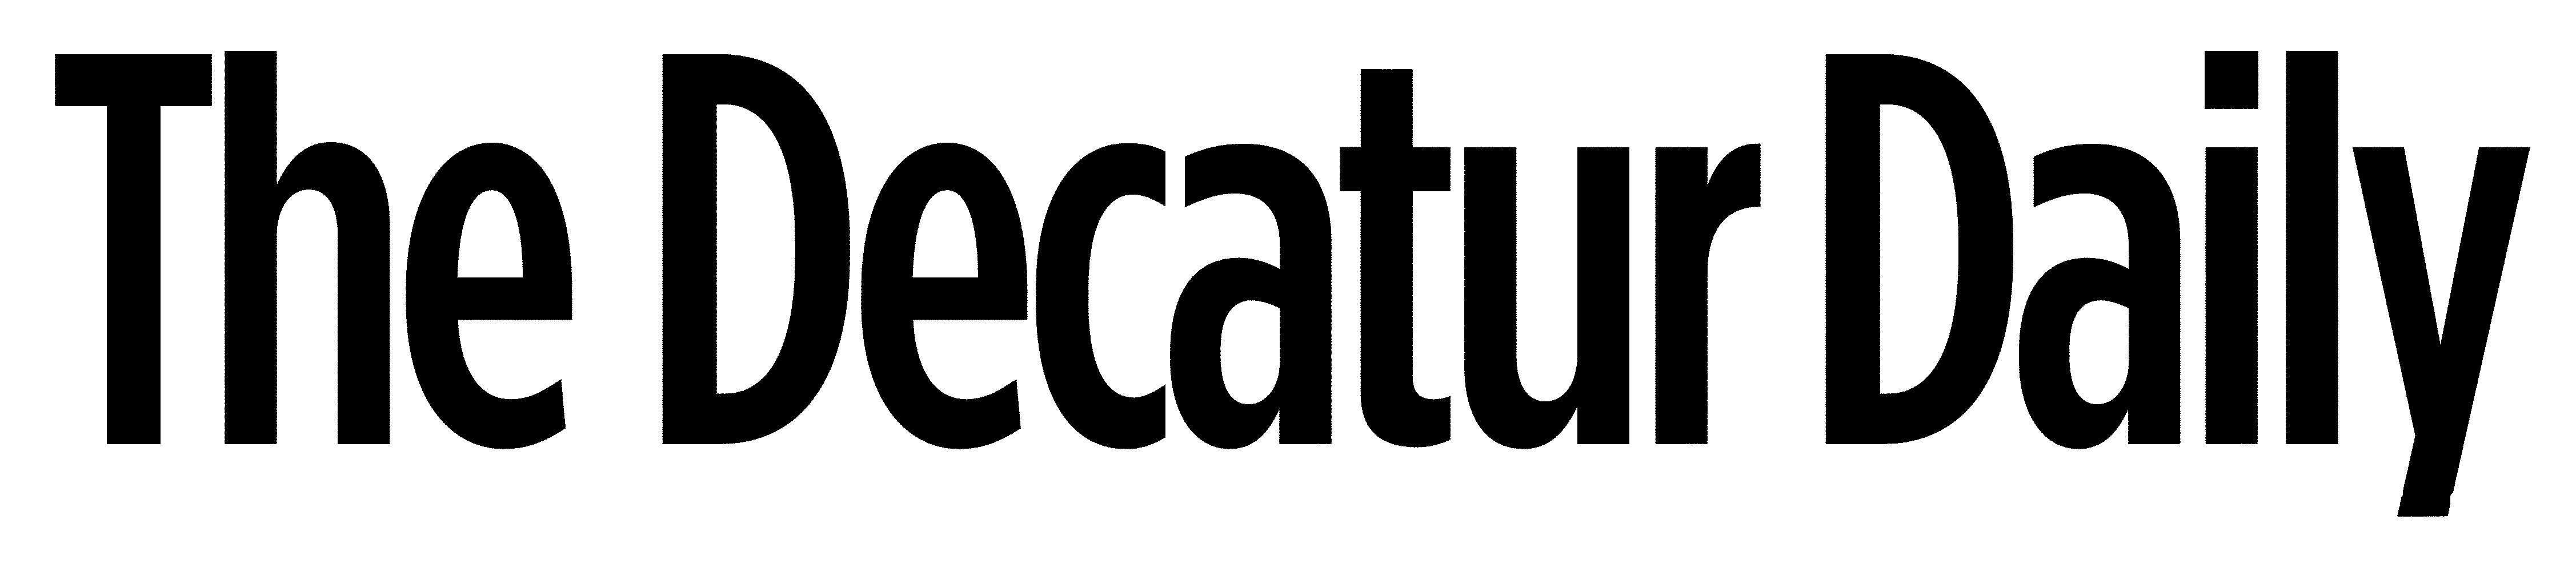 Decatur Daily logo 2006